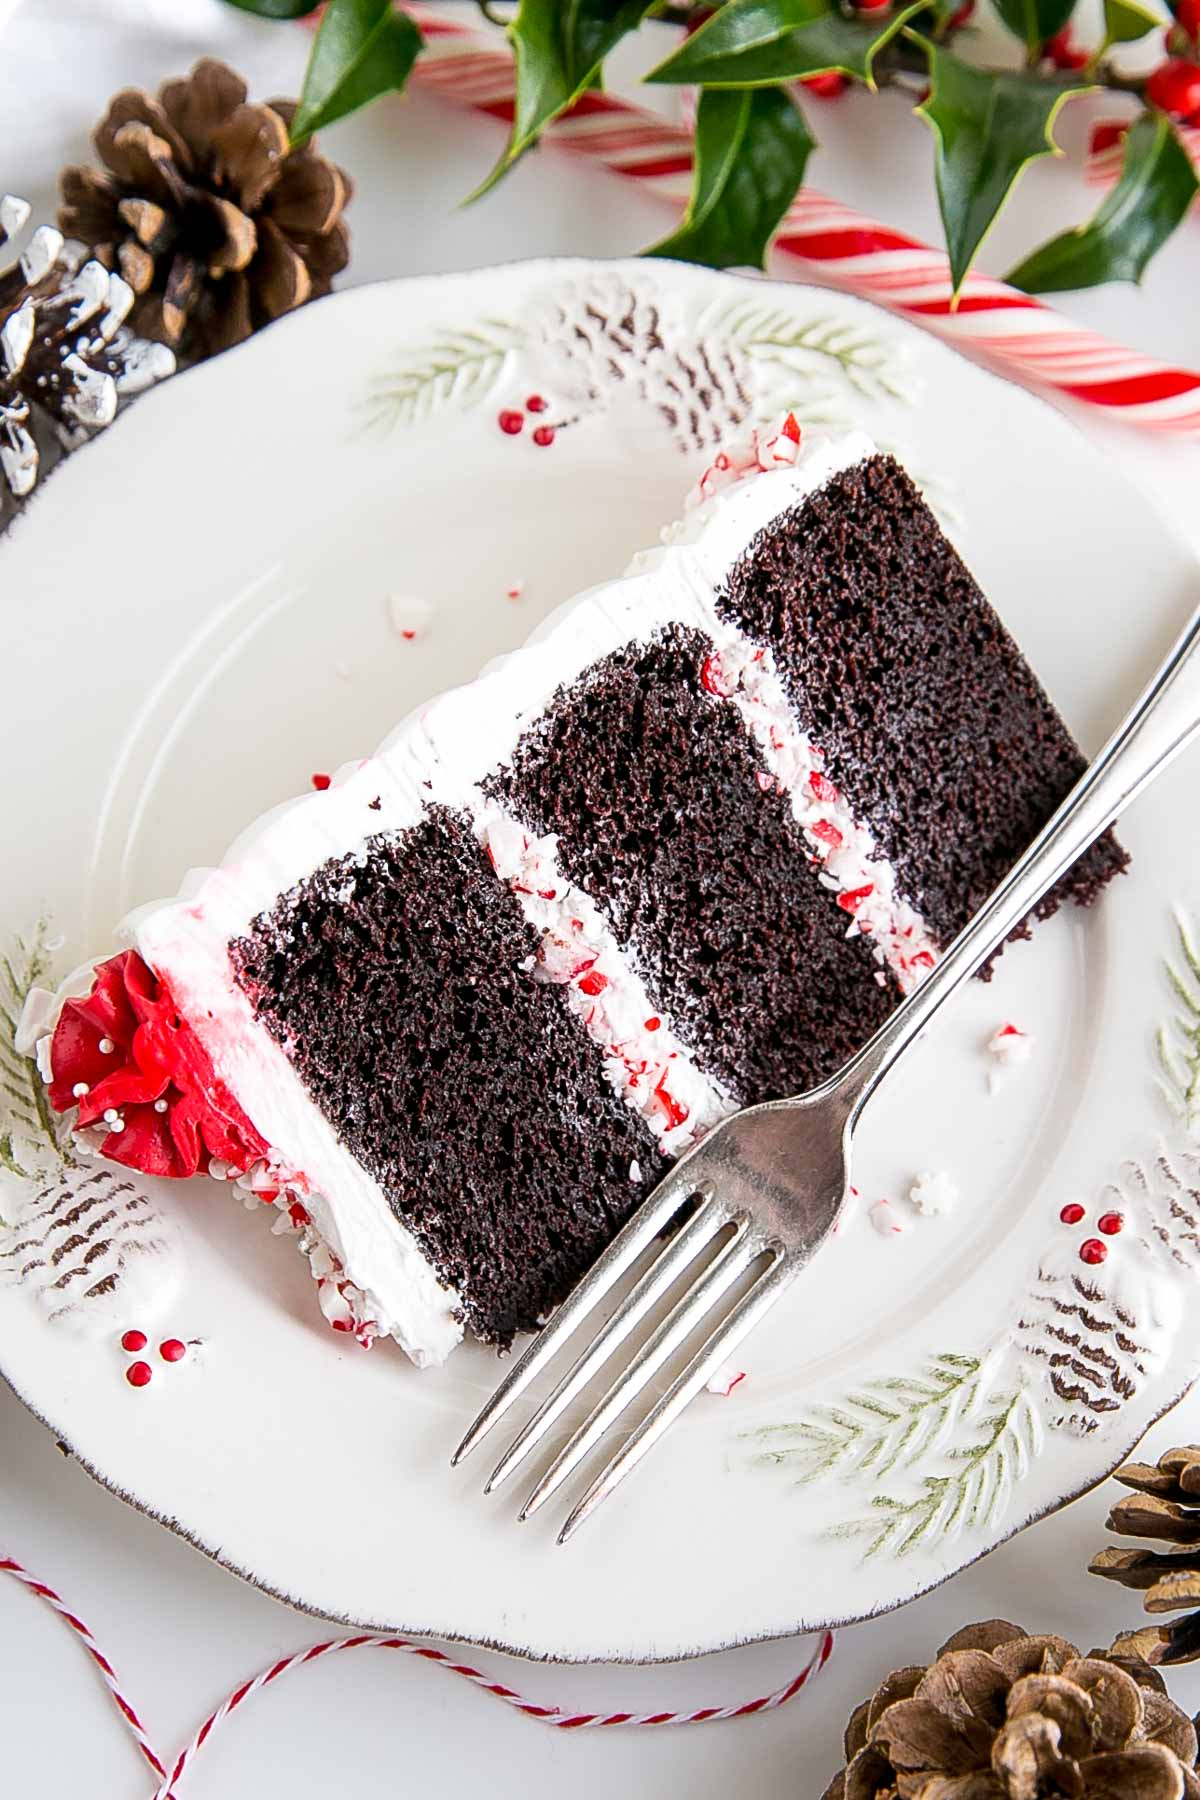 Slice of chocolate peppermint cake on a plate.